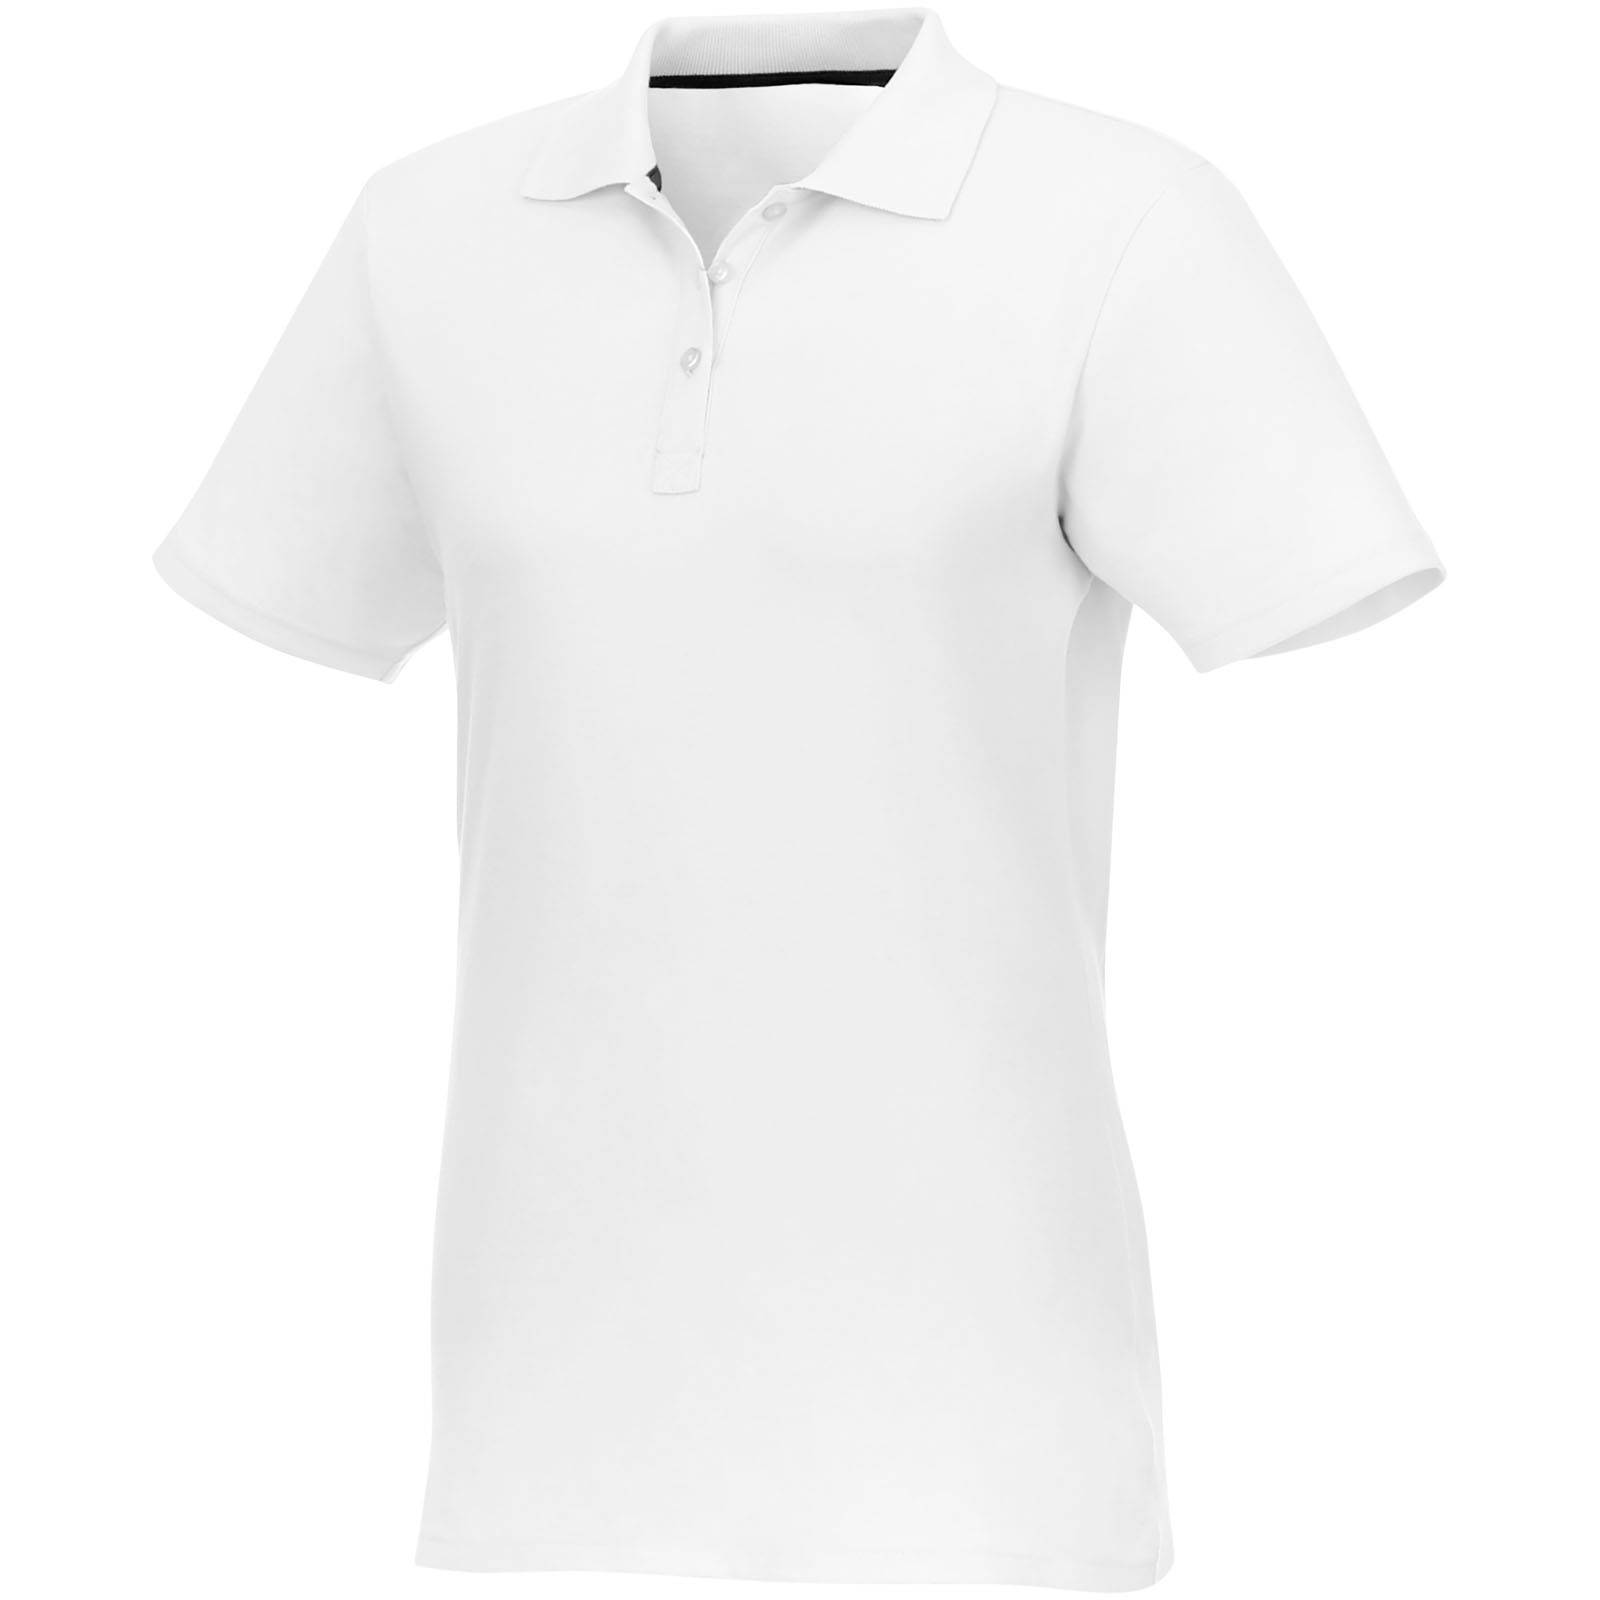 Helios short sleeve women's polo - White / XS